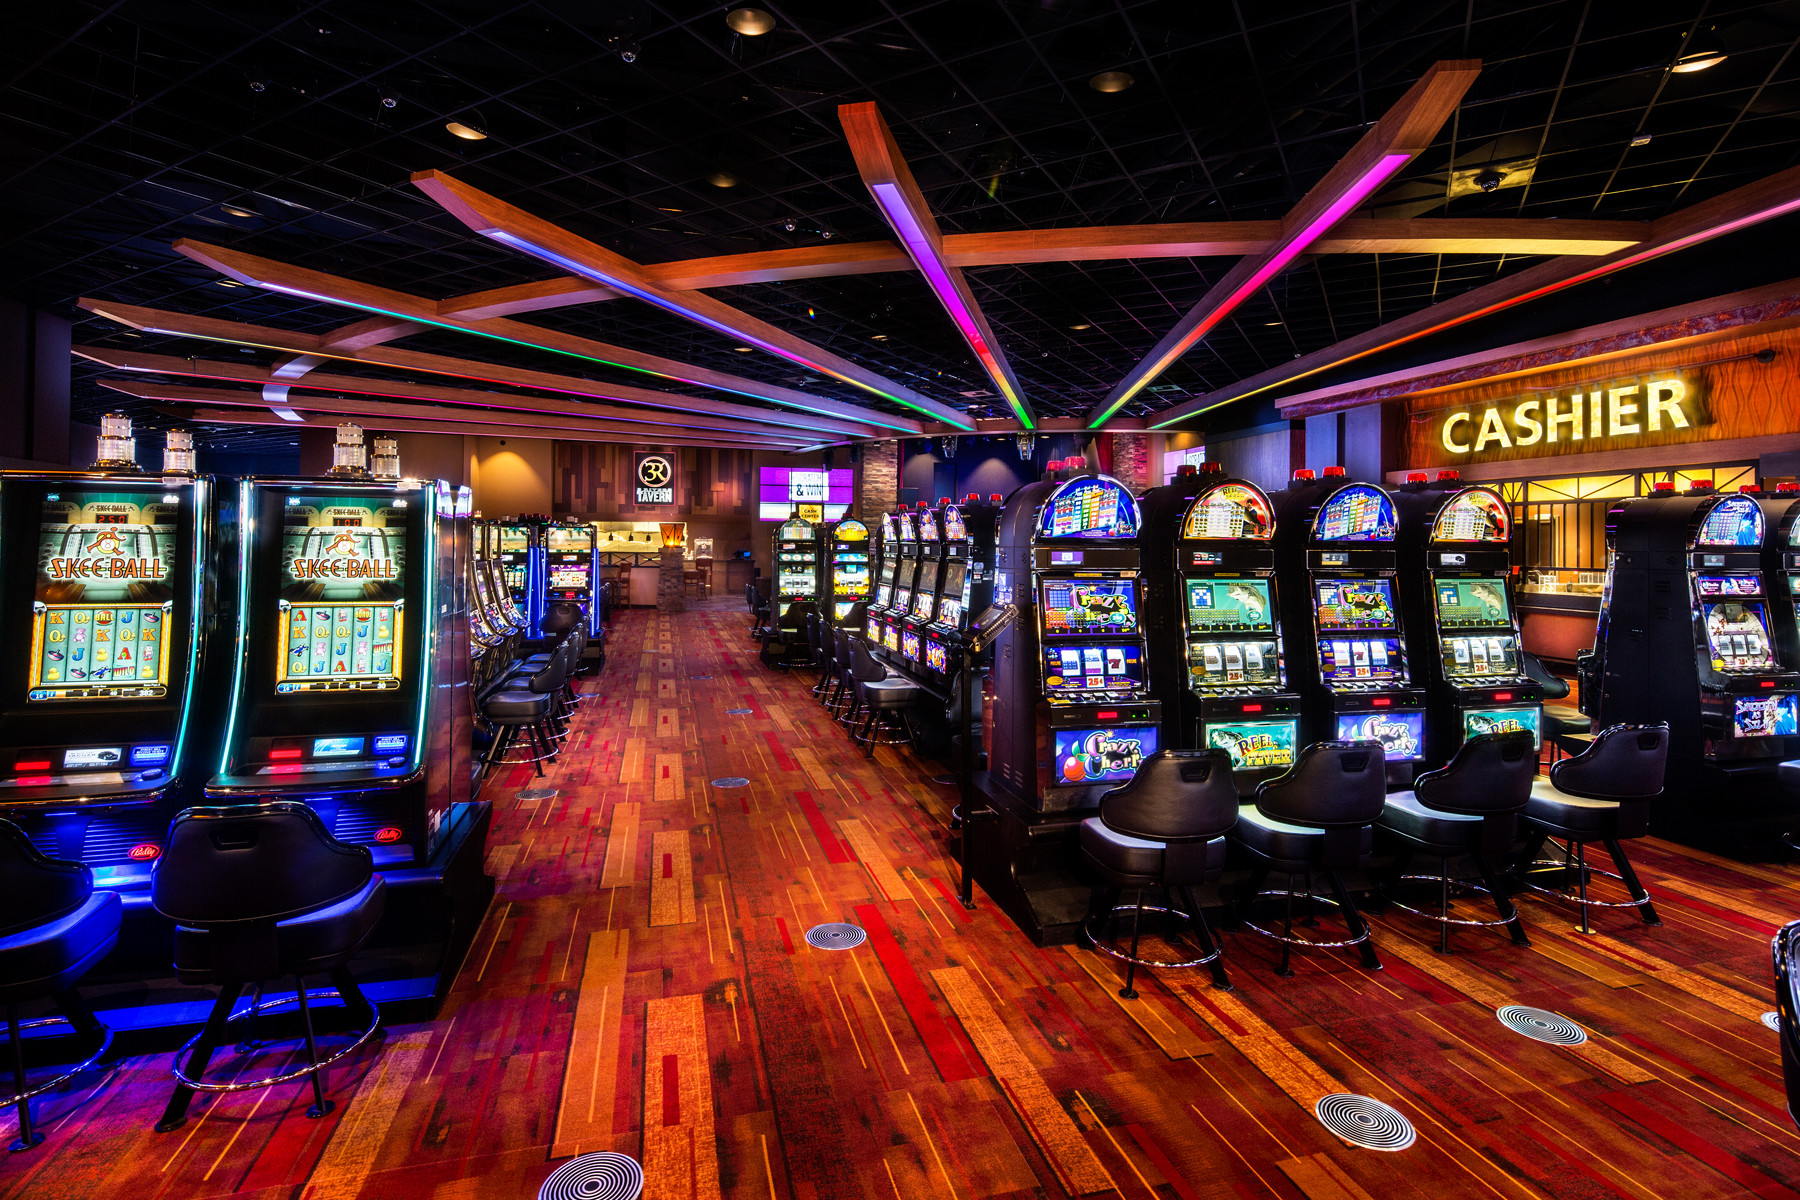 Finding Customers With Casino Part A, B, C